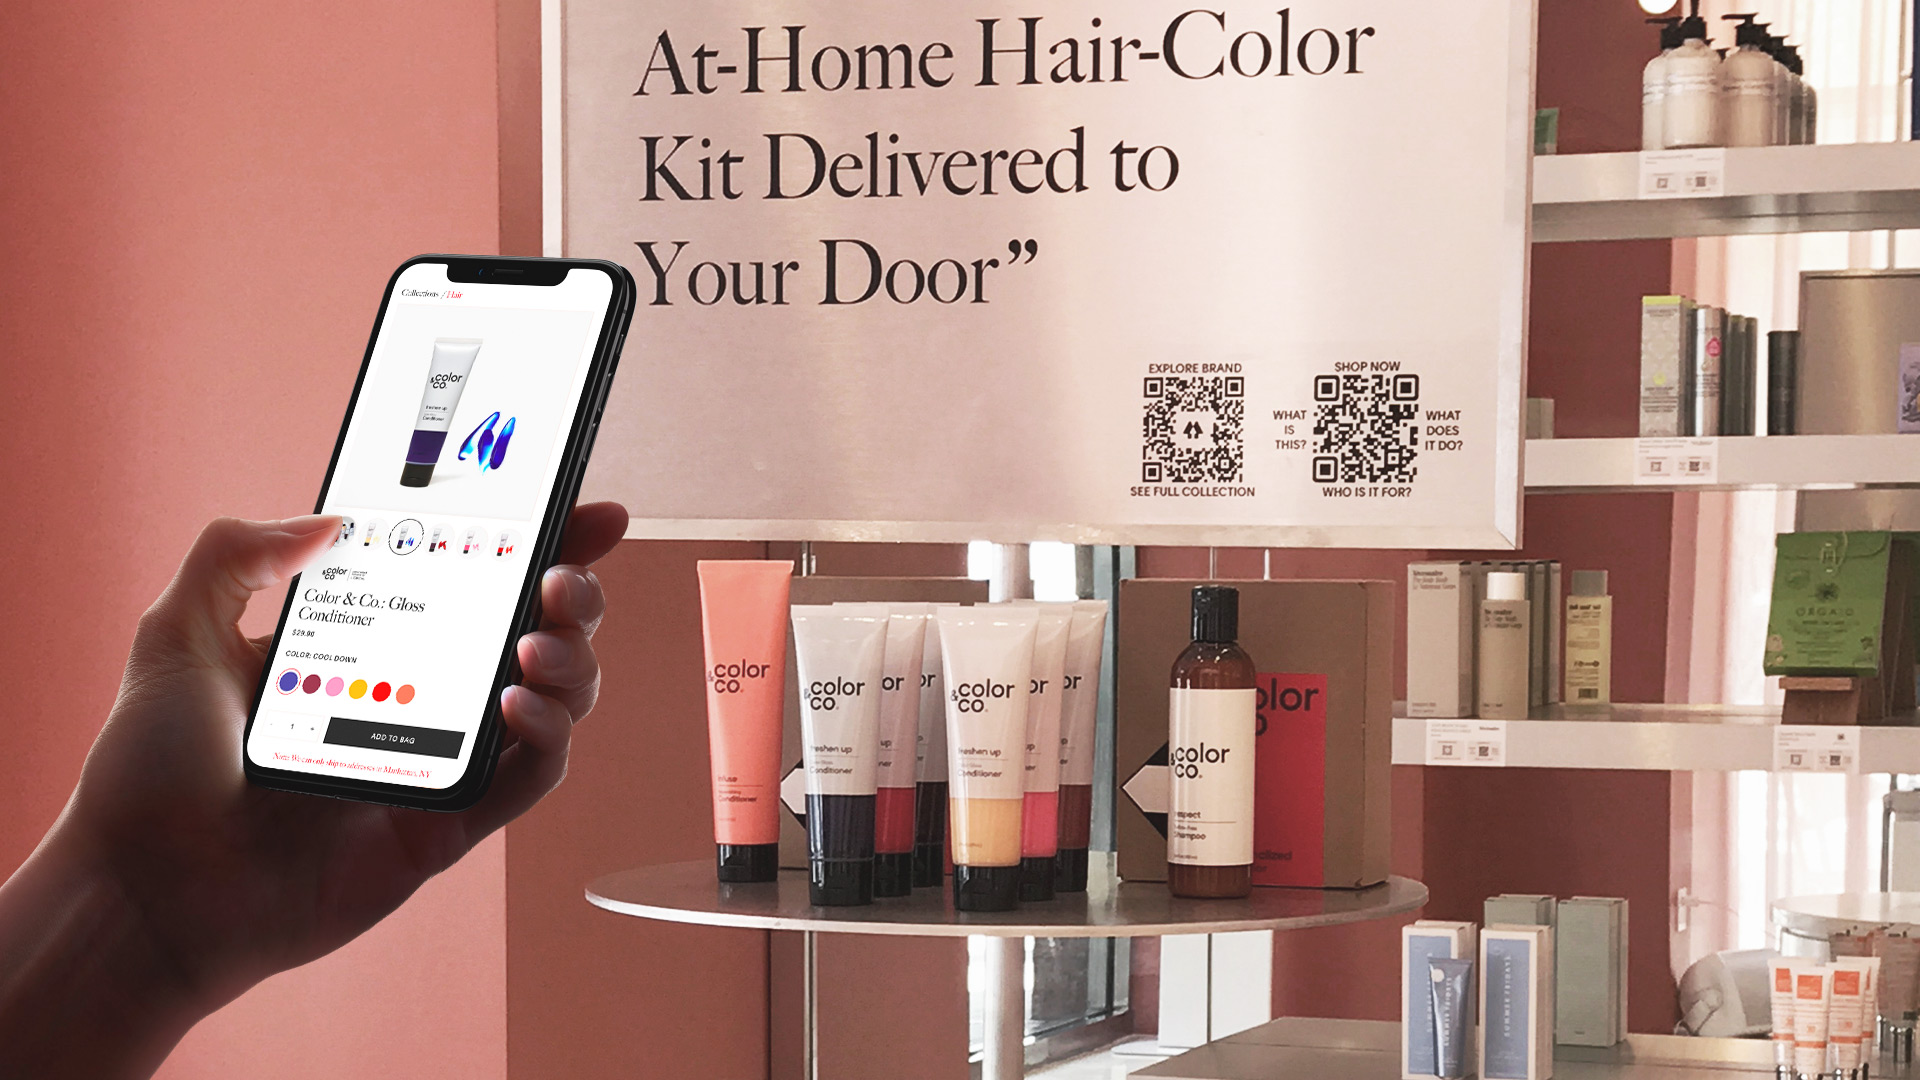 Phone scanning QR code at Allure store